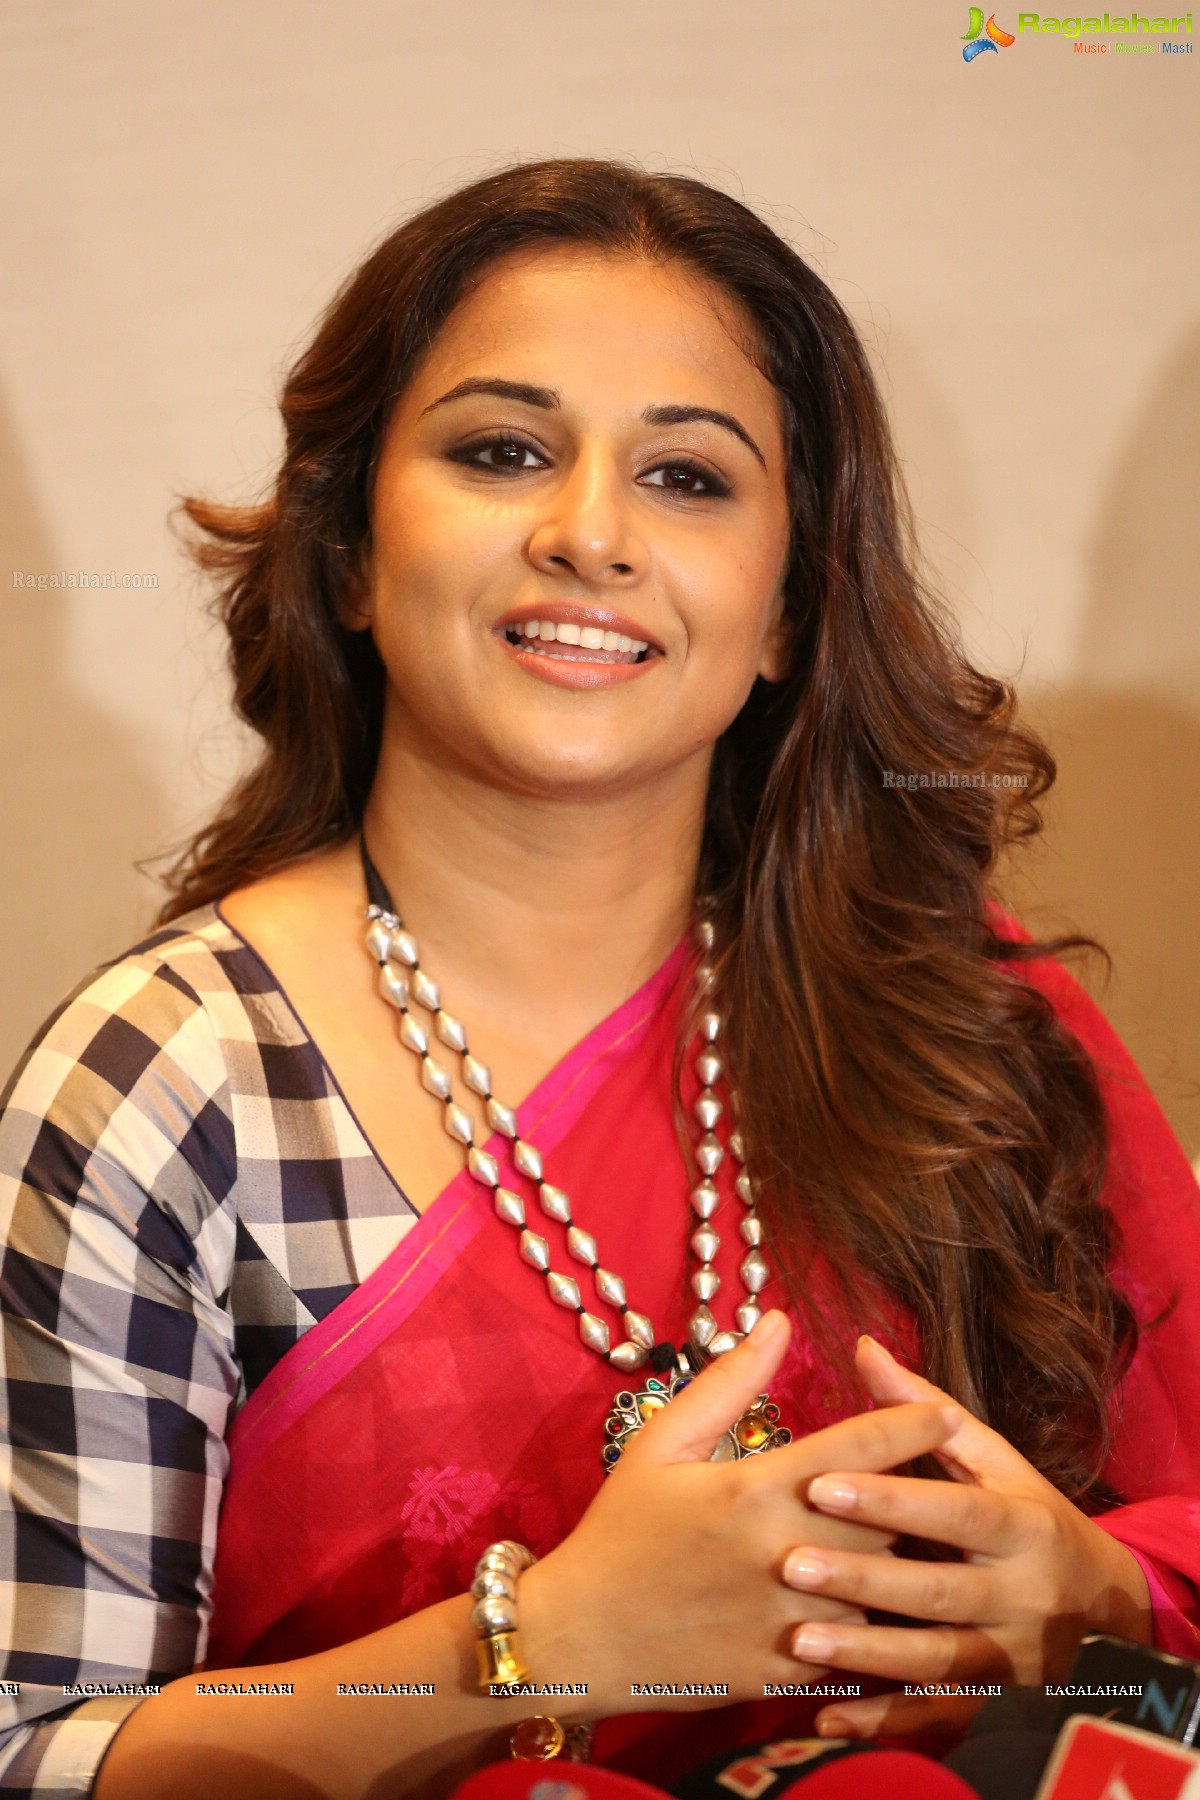 vidya balan image 36 | telugu actress posters,images, photos